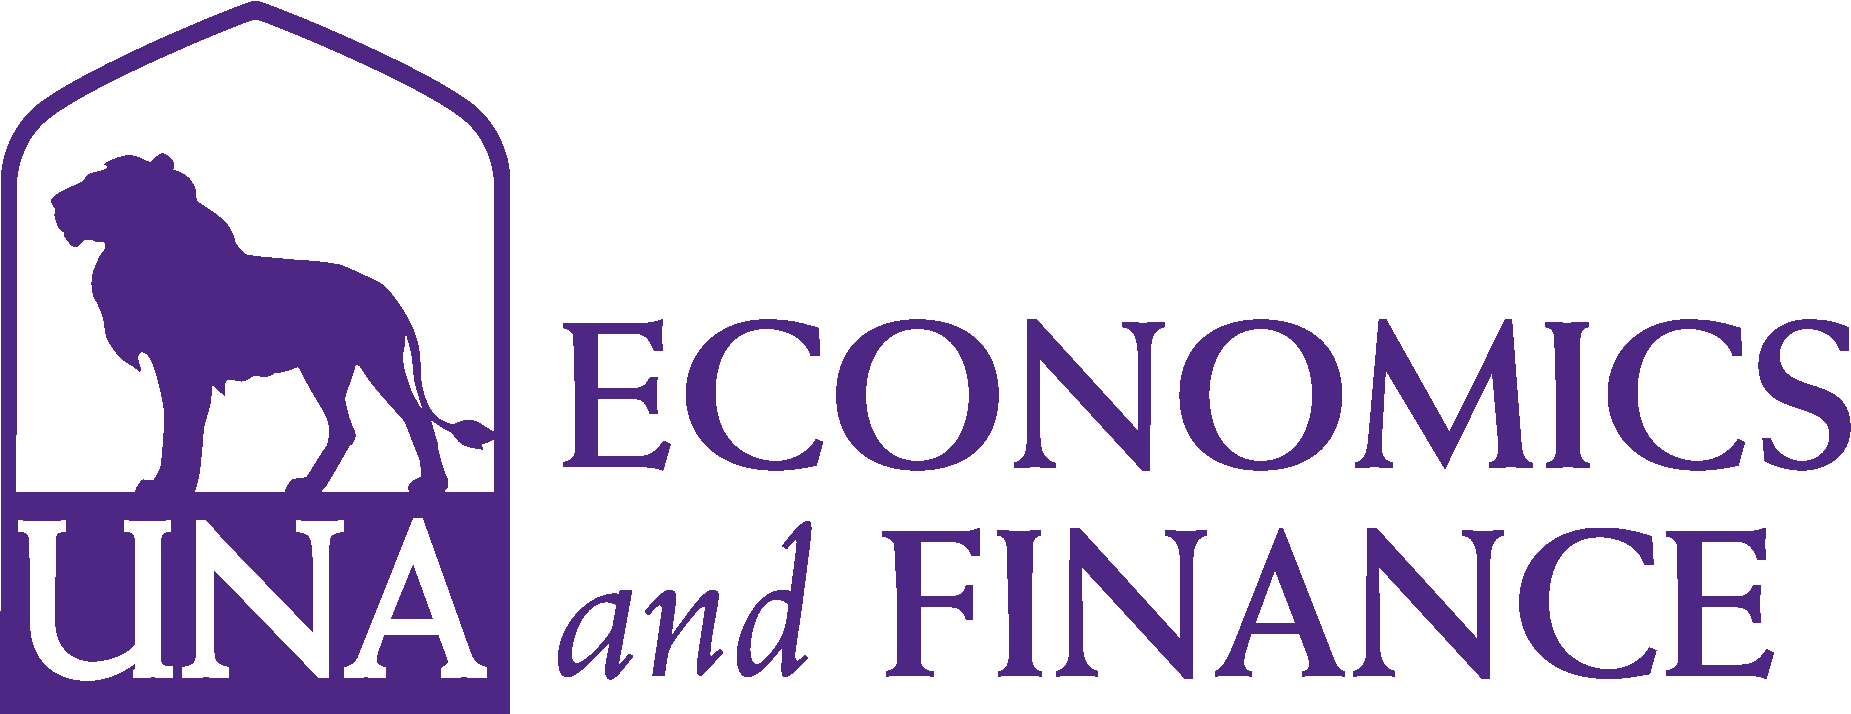 College of Business - Economics and Finance Logo - Purple - Version 3